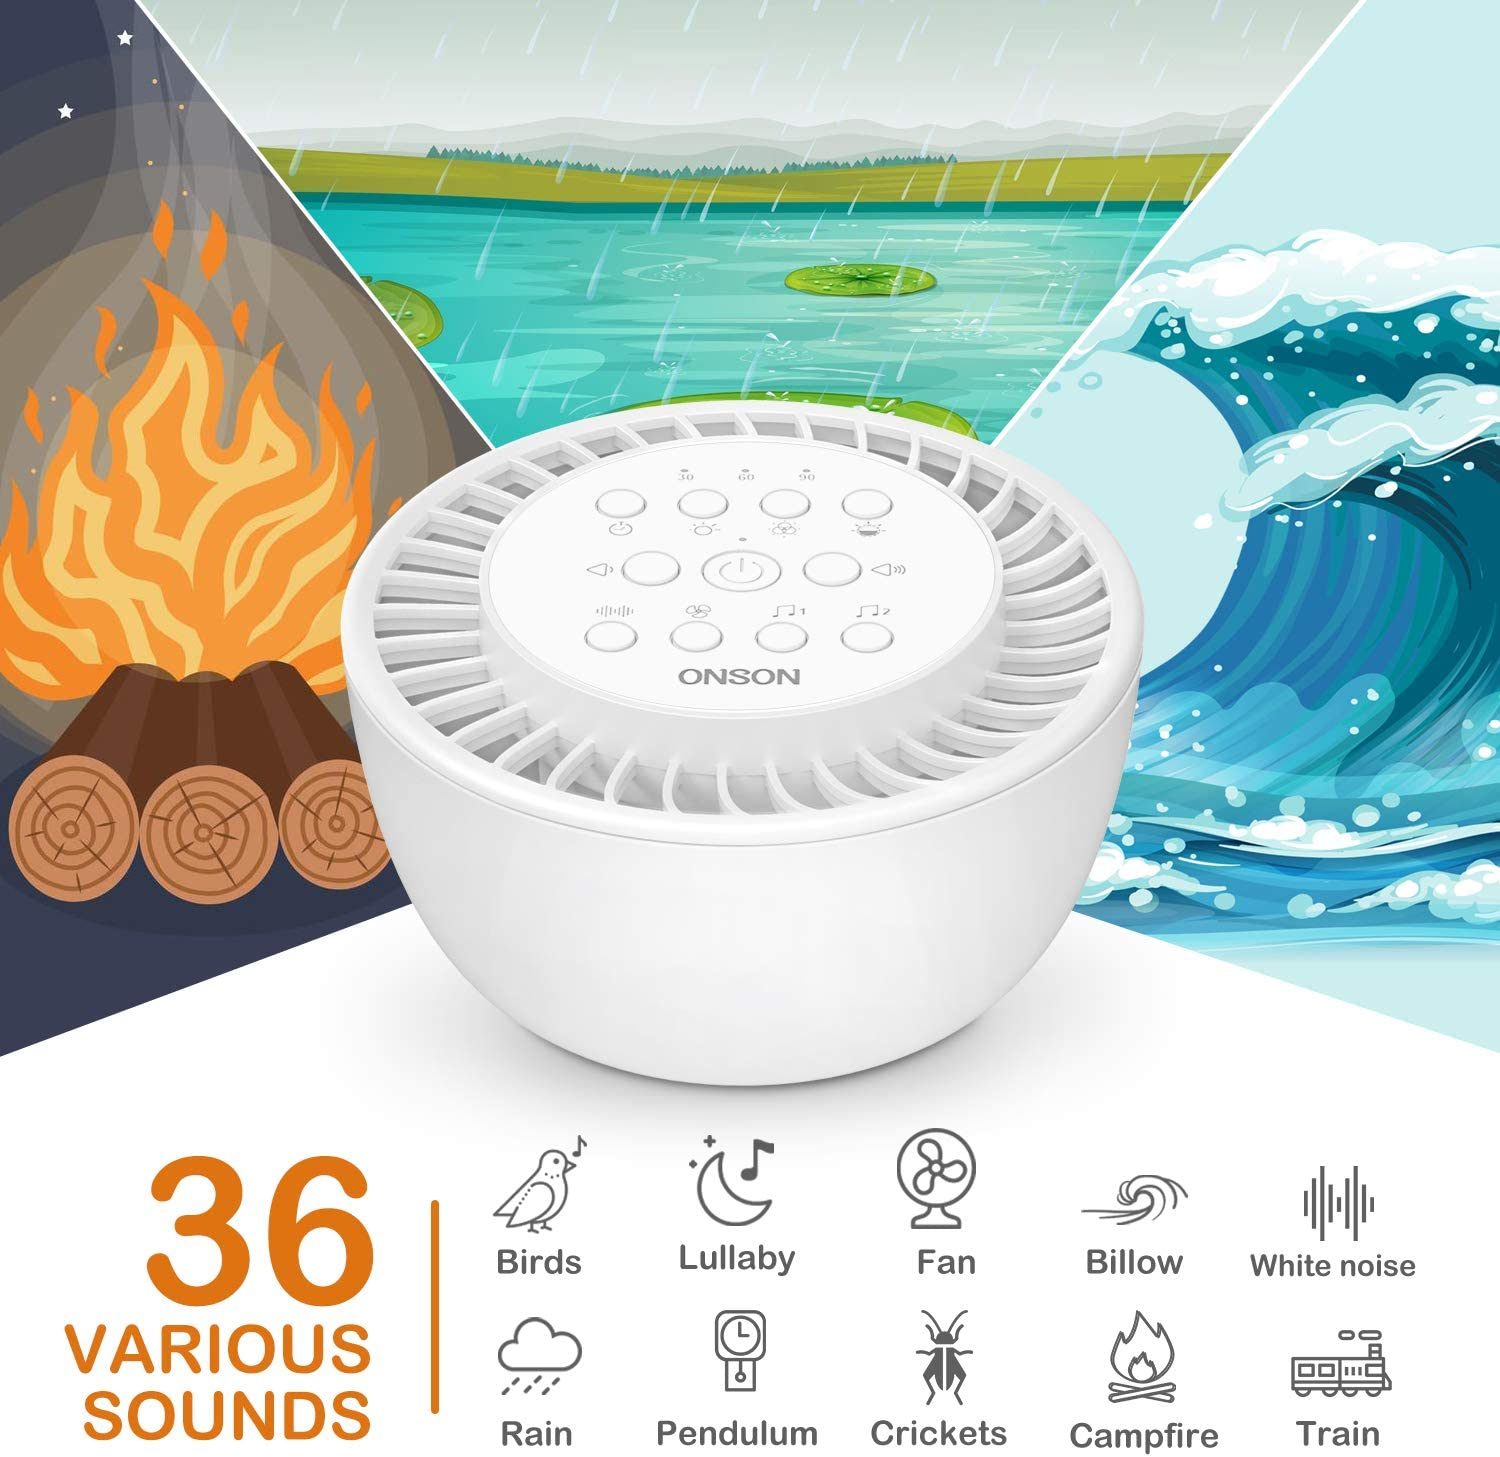 ONSON White Noise Machine – Sound Machine for Sleeping Relaxation,with 8 Baby Soothing Night Light,36 High Fidelity Nature Sounds,Sleep Sound Therapy for Home,Office,Travel,Baby,Kids and Adults